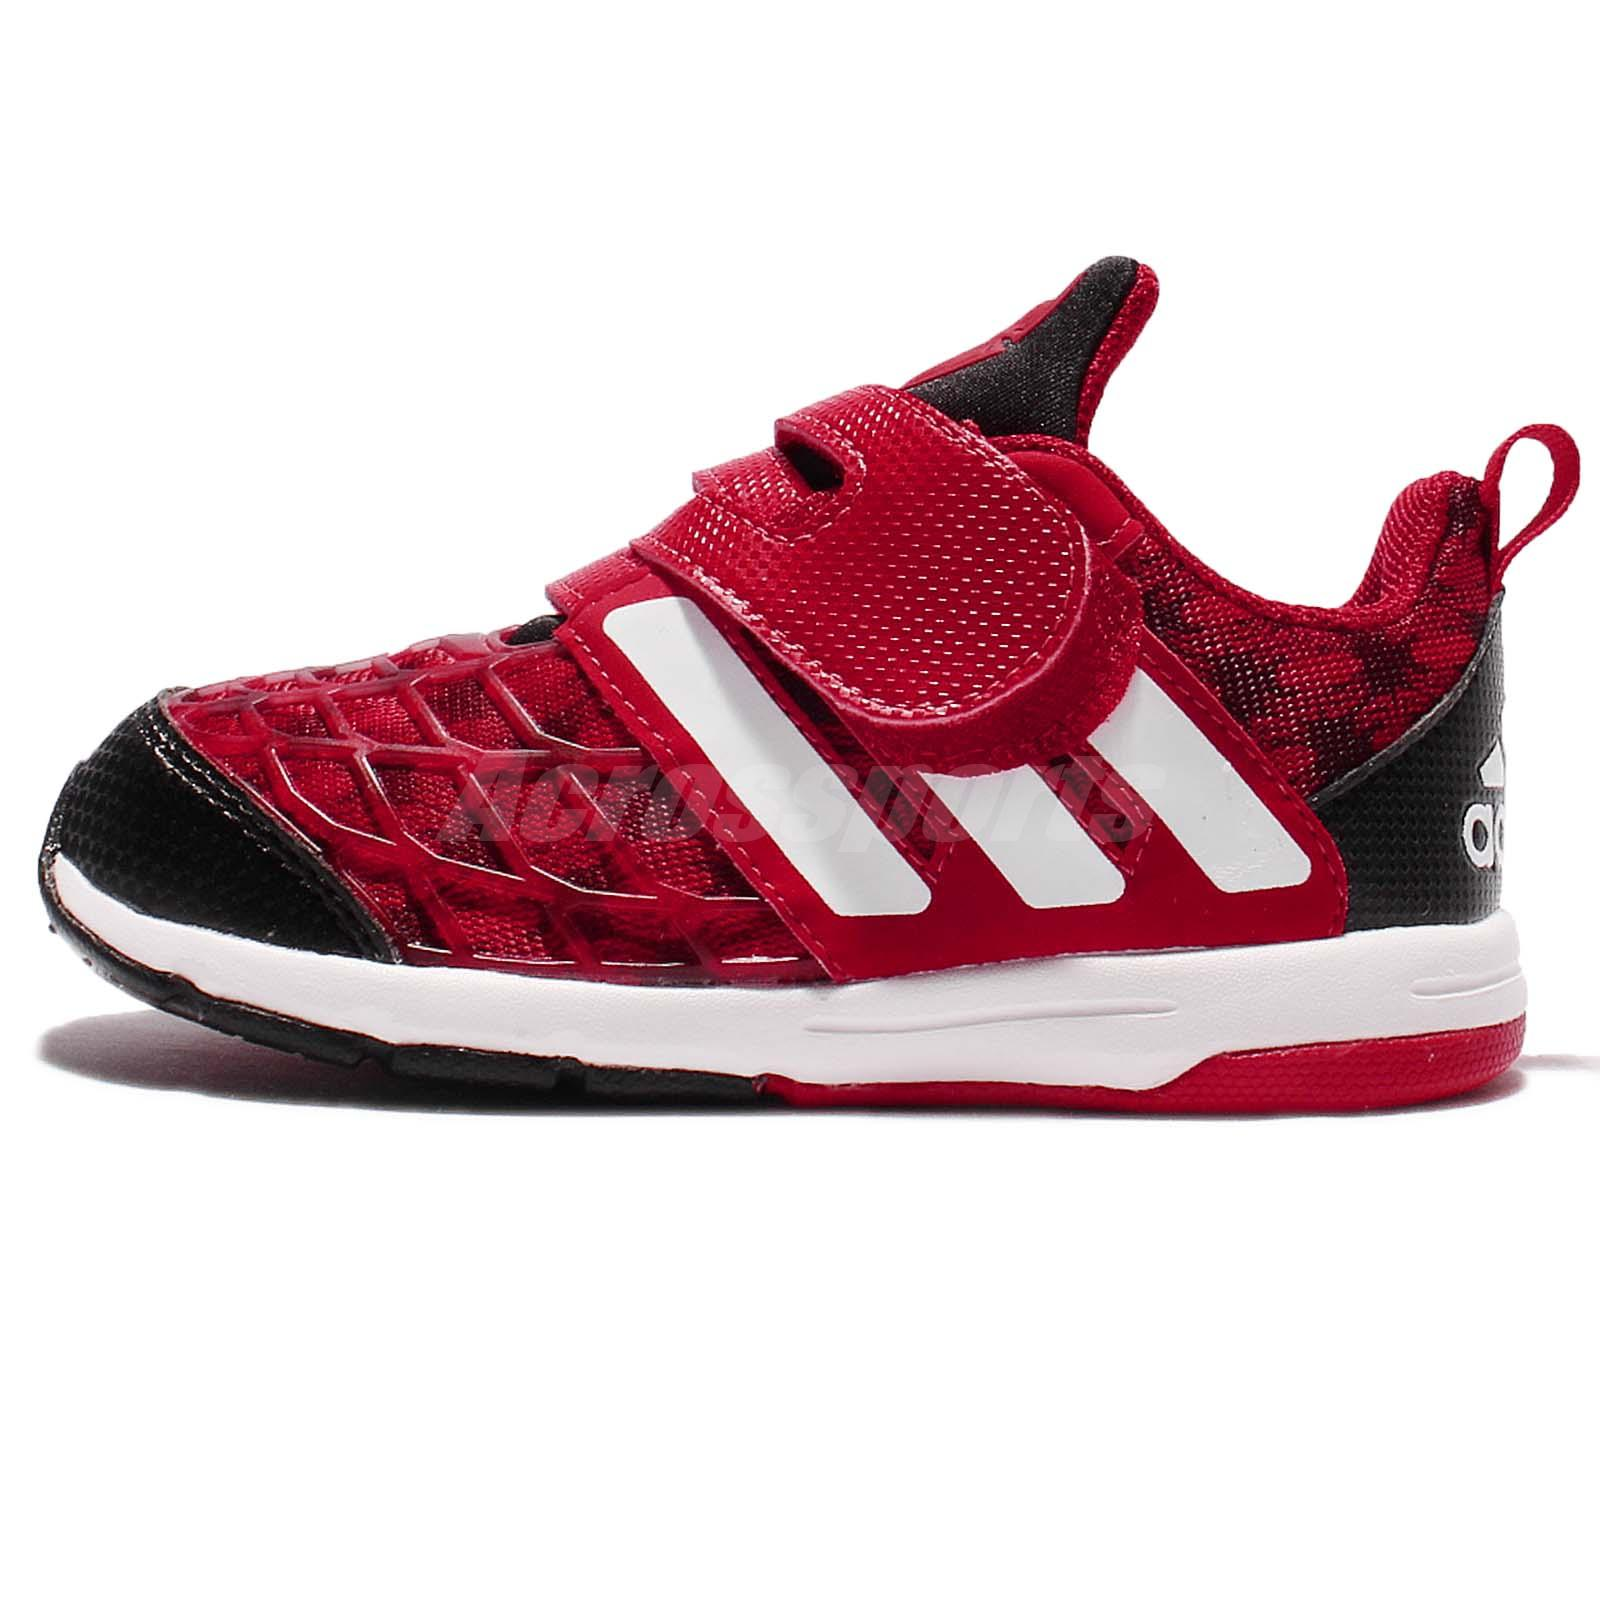 adidas toddler running shoes